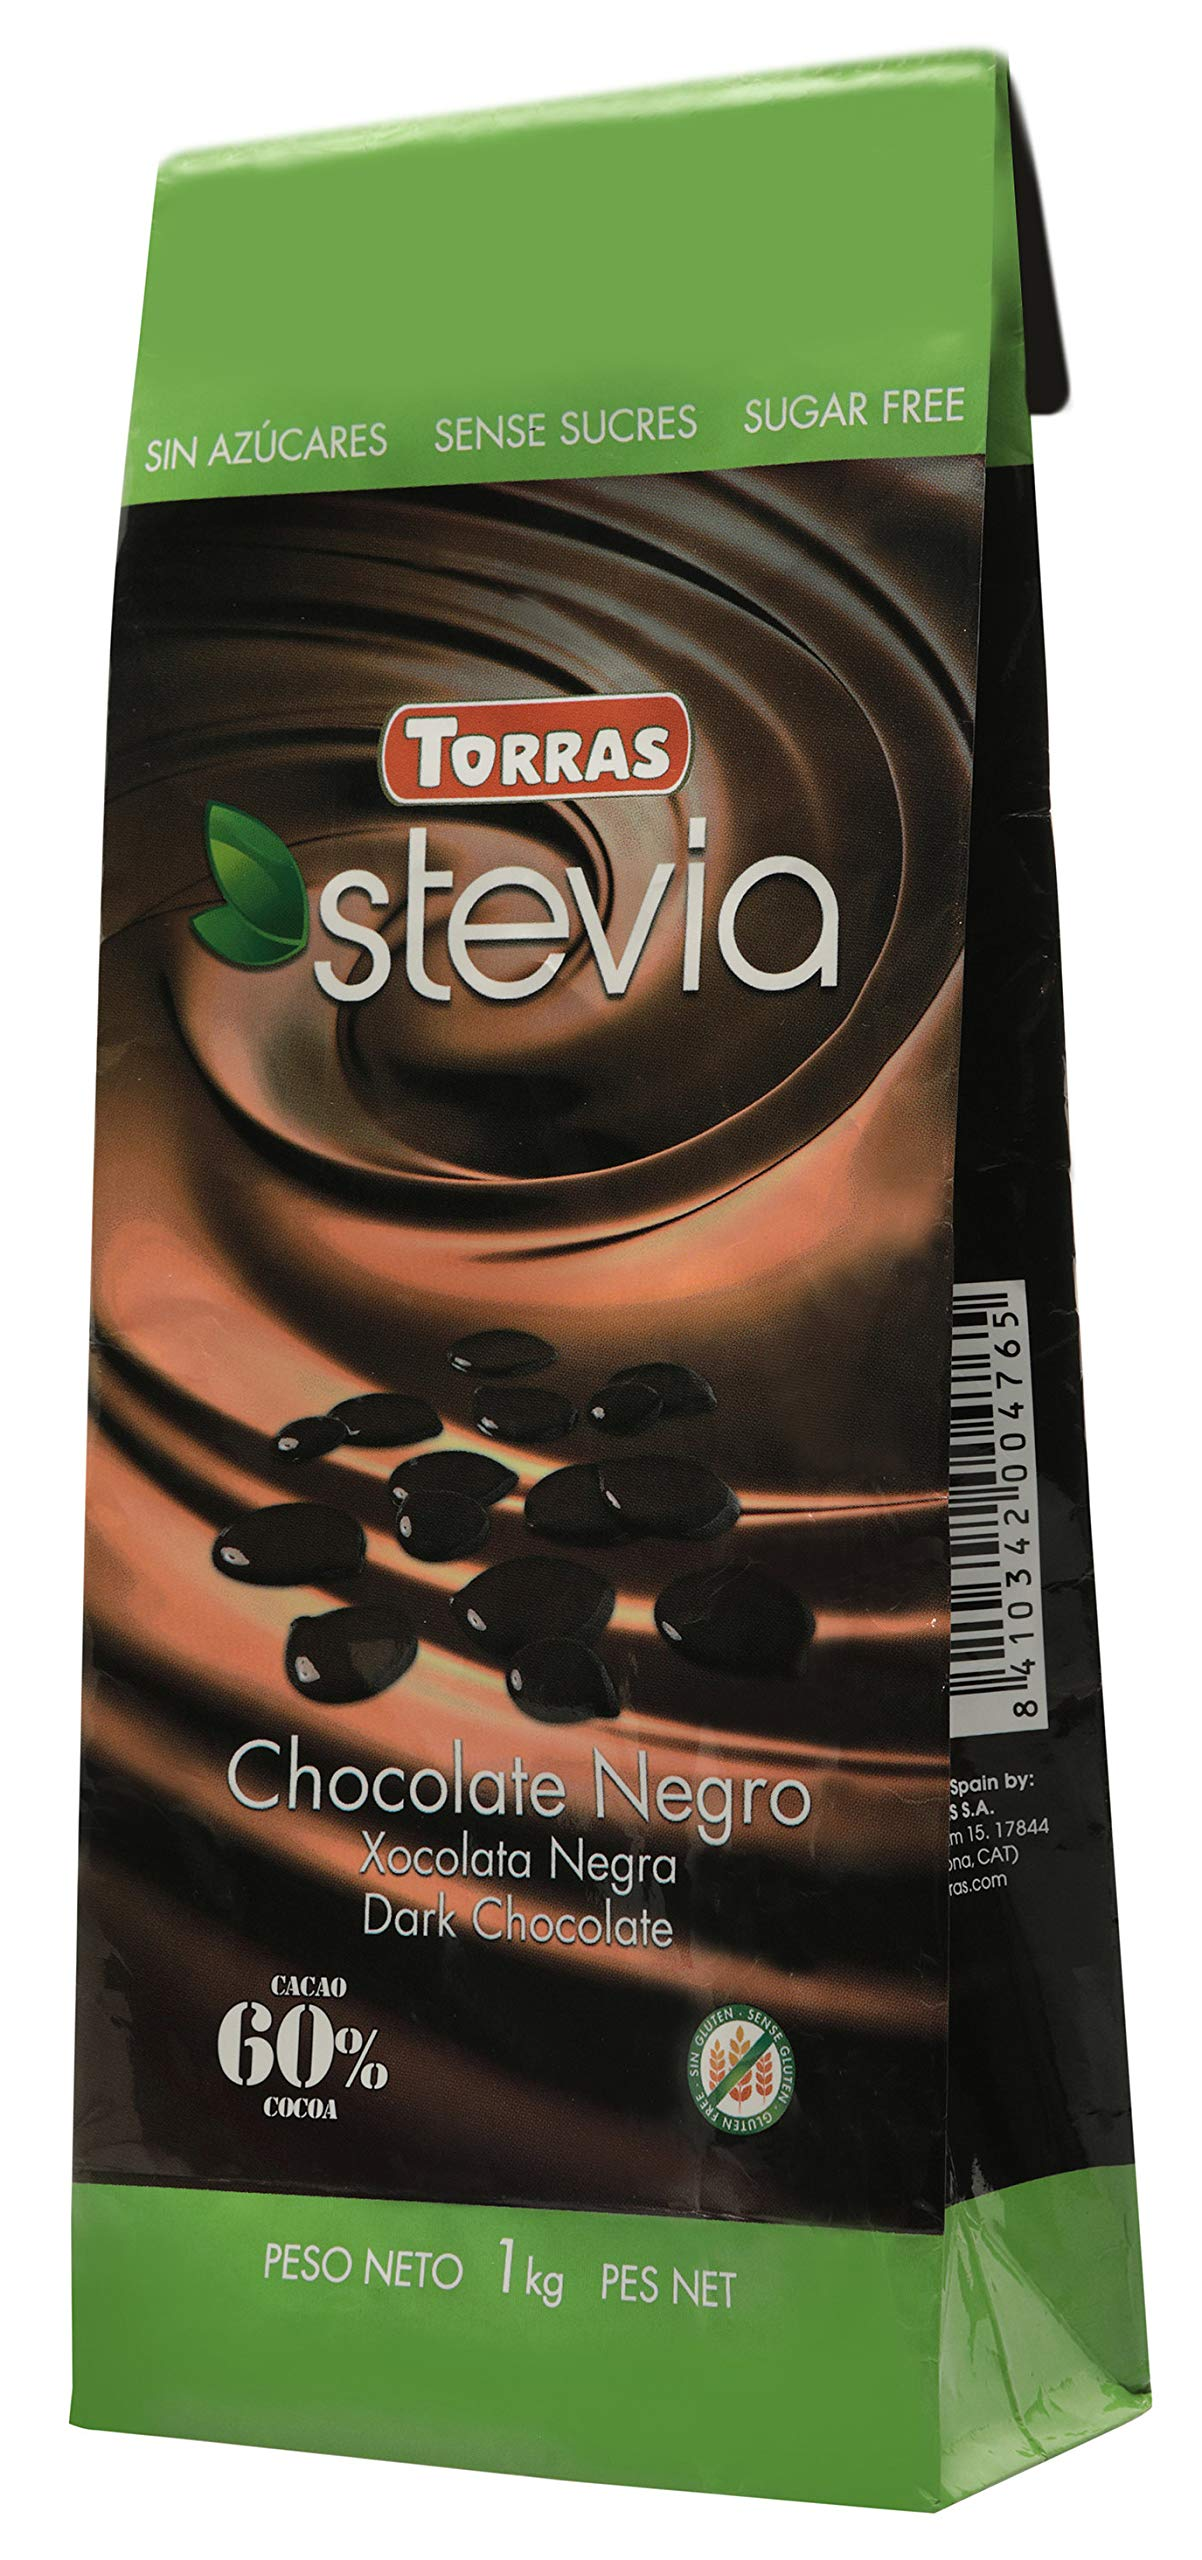 Torras Sugar Free and Gluten Free Stevia Large Dark Chocolate Chip/Drop Bag - 60% Cocoa (35 Ounces/1 Kilogram Pack) by Torras